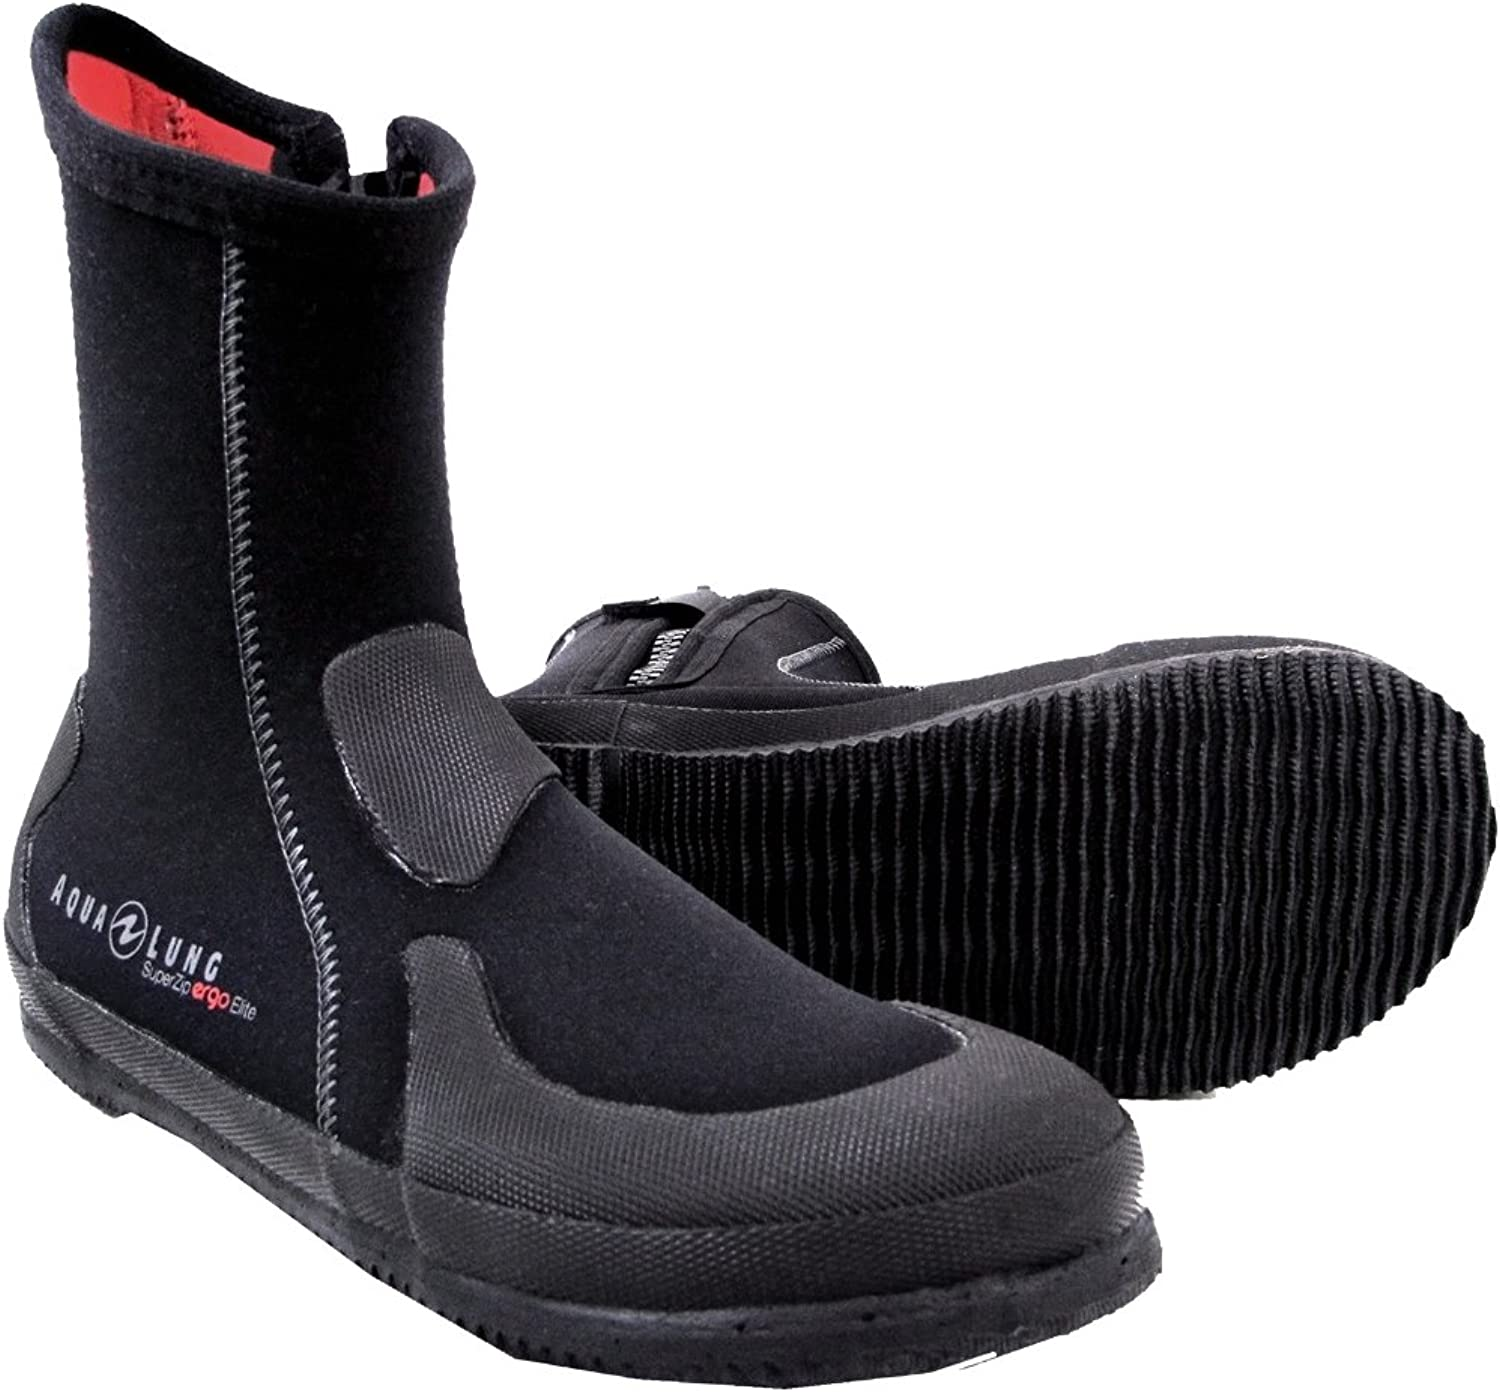 Aqua Lung 5mm Superzip Elite Boot